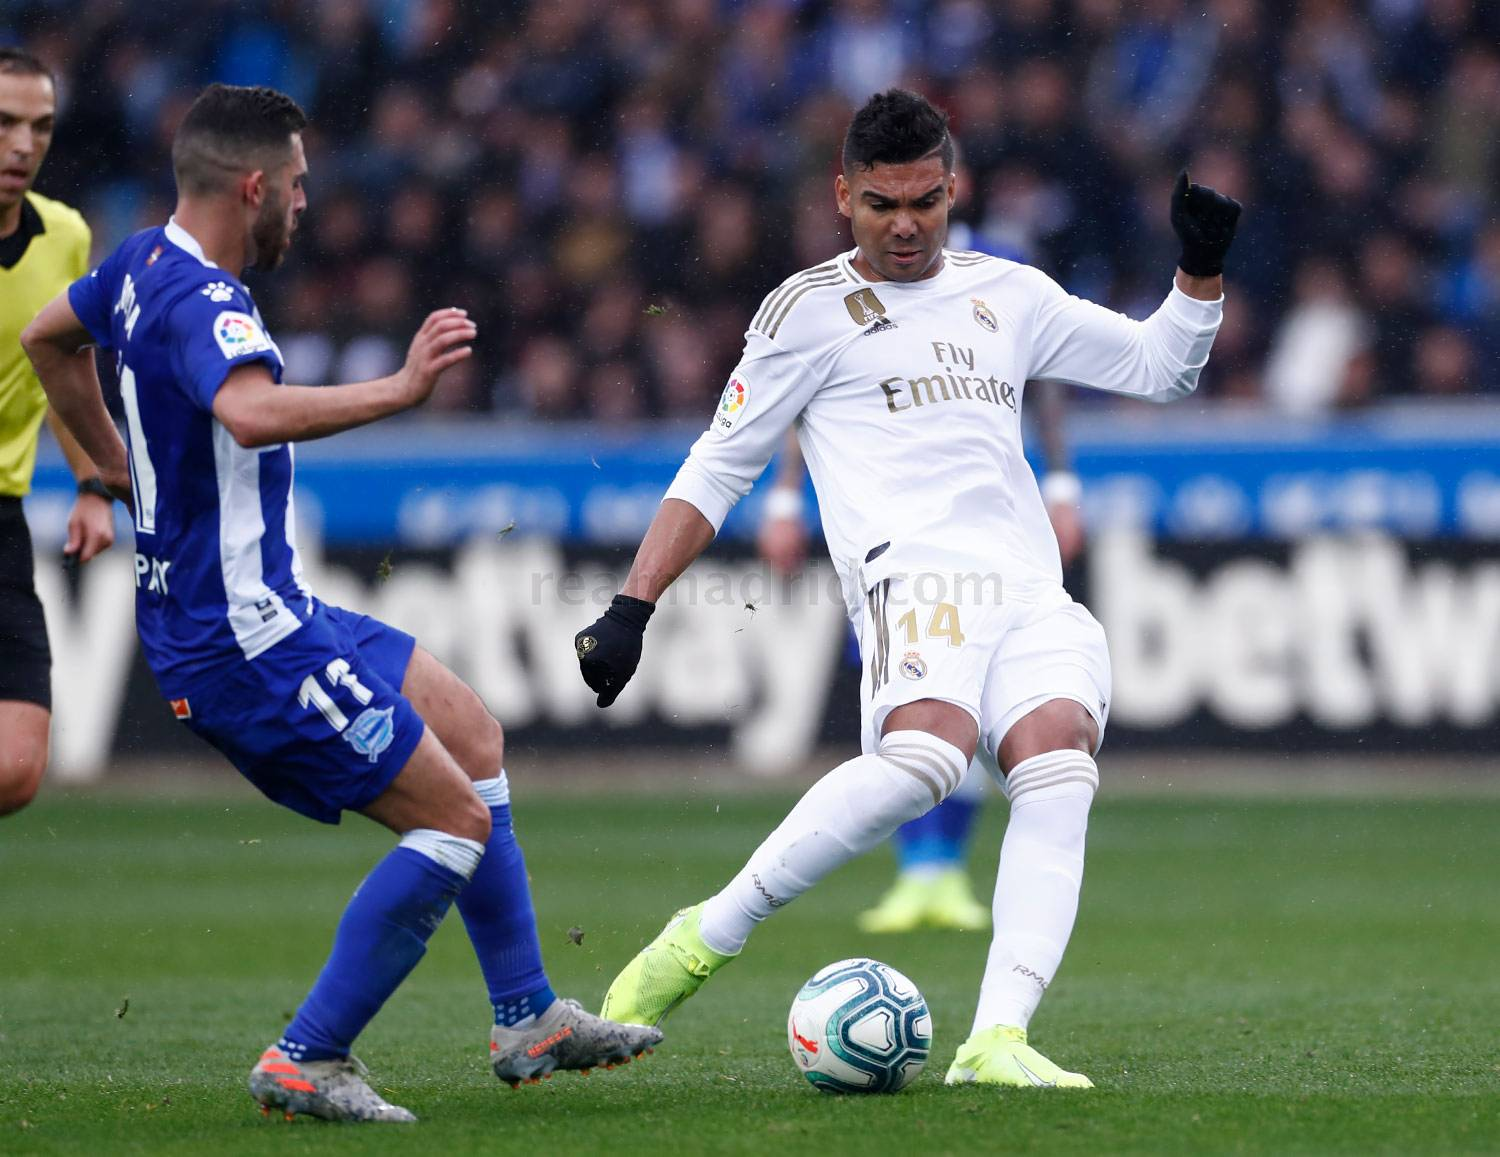 Real Madrid - Alavés - Real Madrid - 30-11-2019